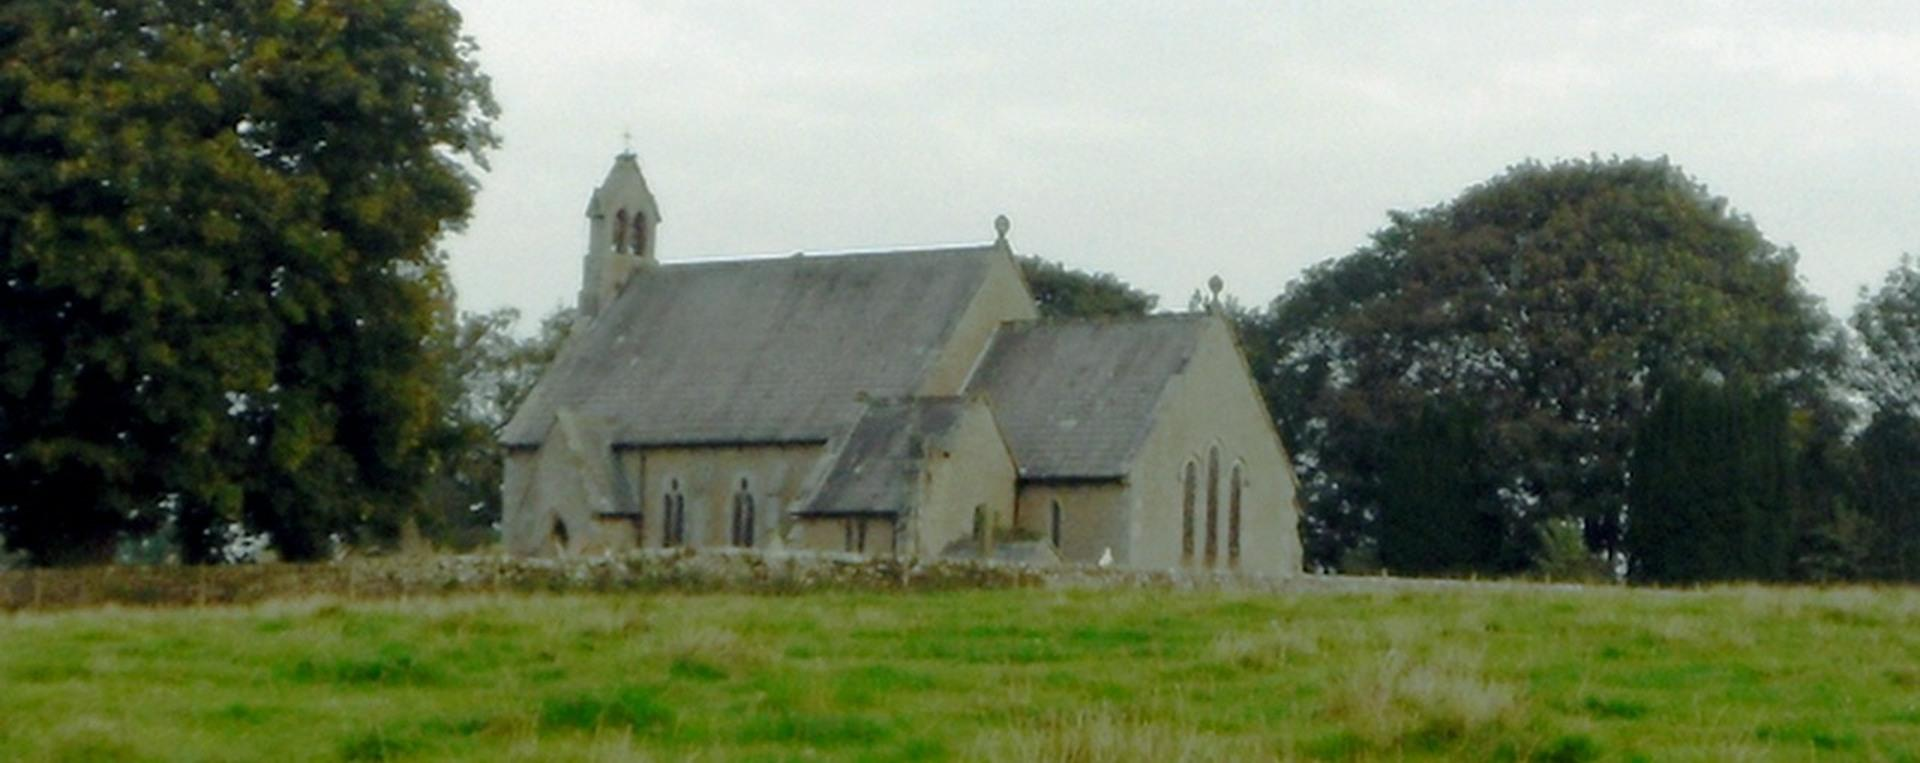 Church of St. Thomas a Becket in Kirkhouse